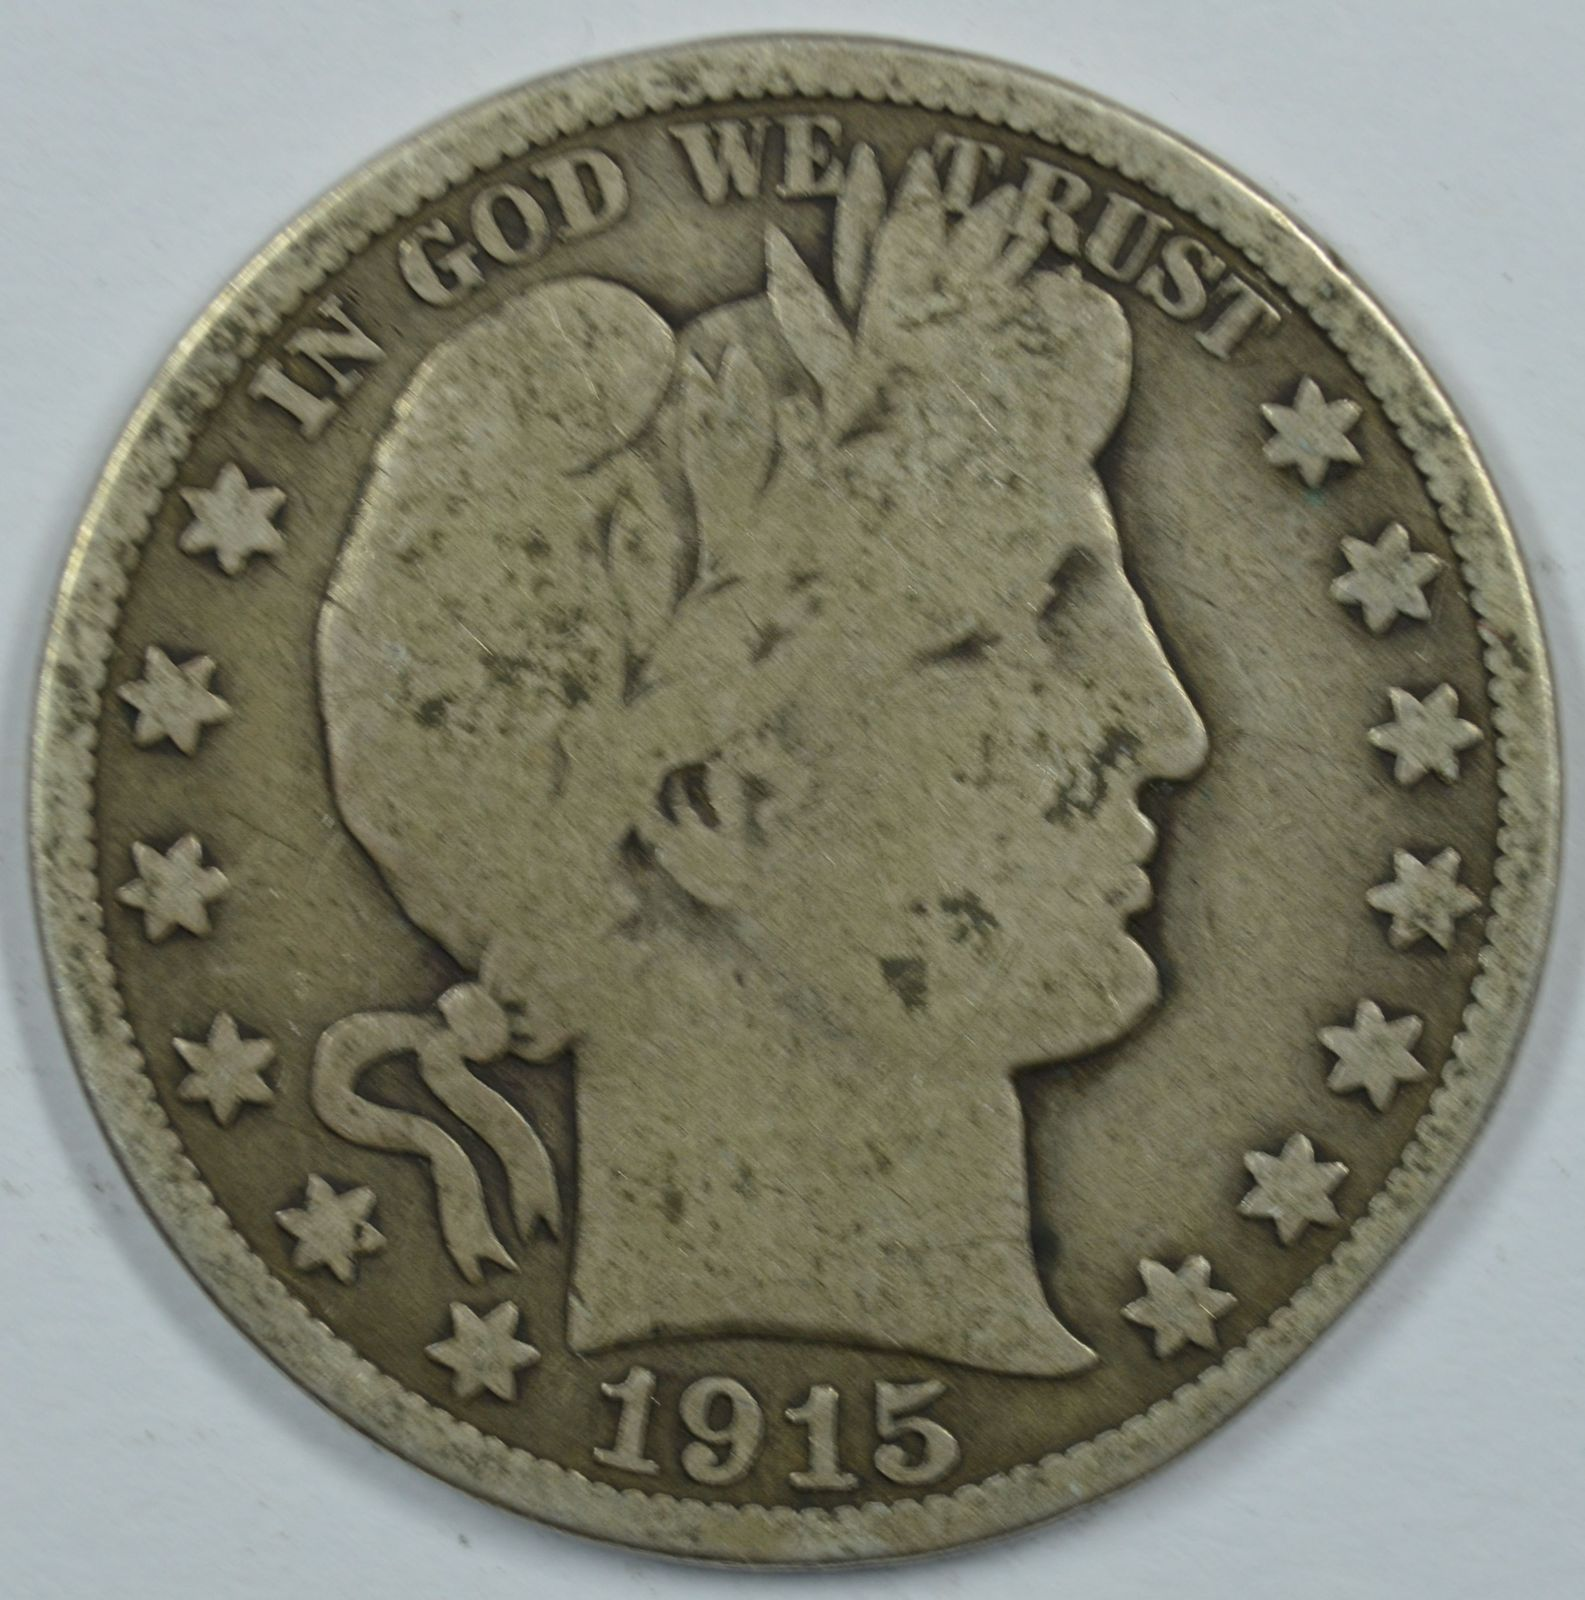 Primary image for 1915 P Barber circulated silver half dollar G details